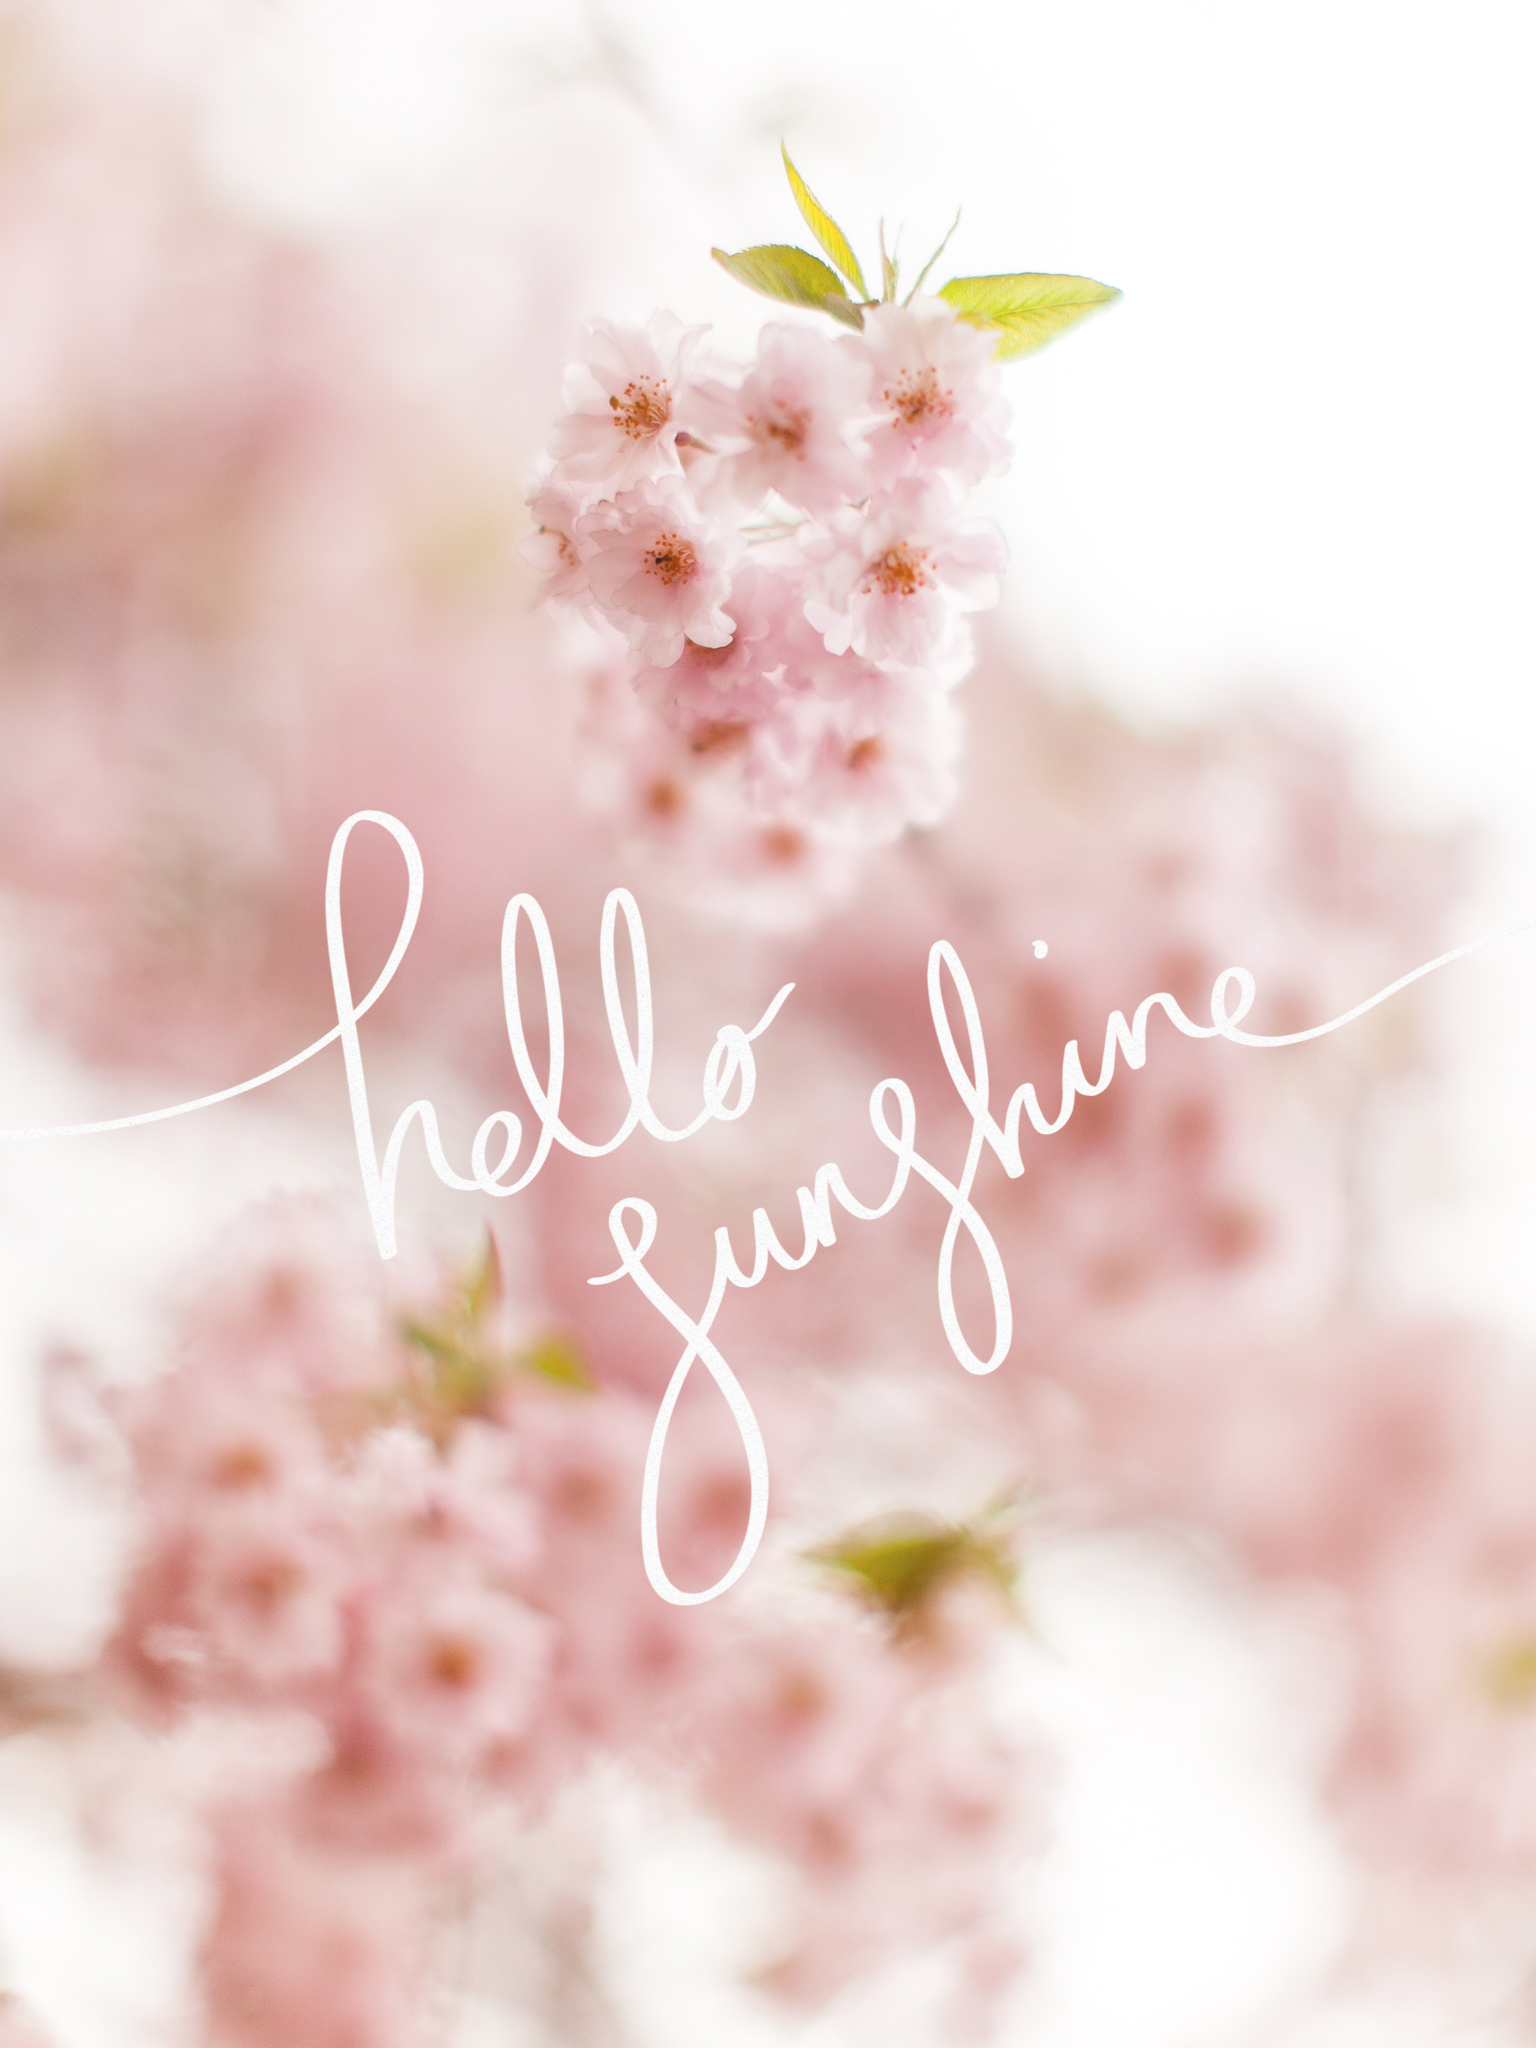 Hello Sunshine A Free Cherry Blossom Desktop Wallpaper